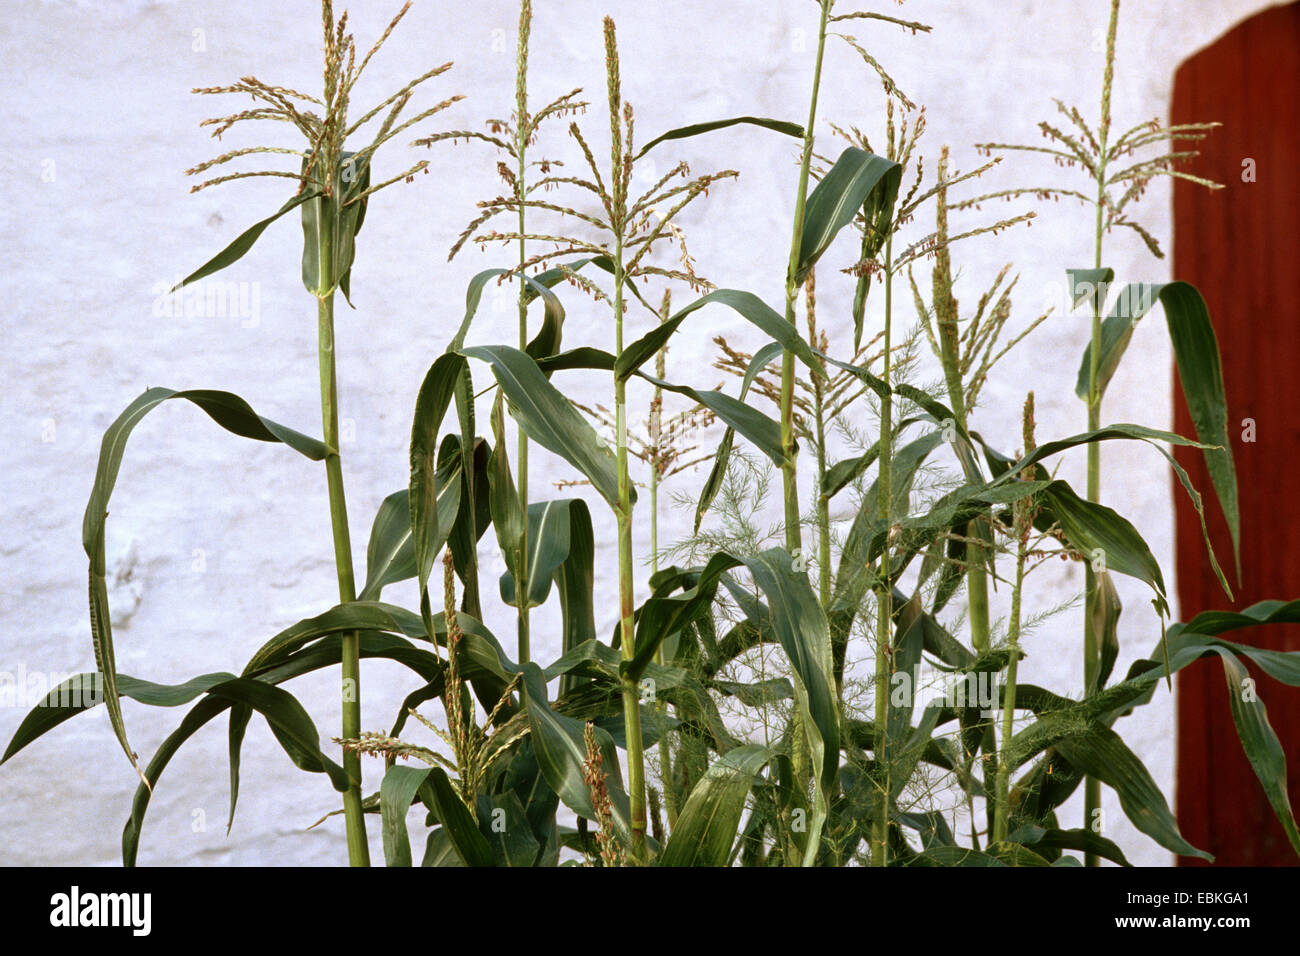 Indian corn, maize (Zea mays), blooming in a frontgarden, mal inflorescences, Germany - Stock Image